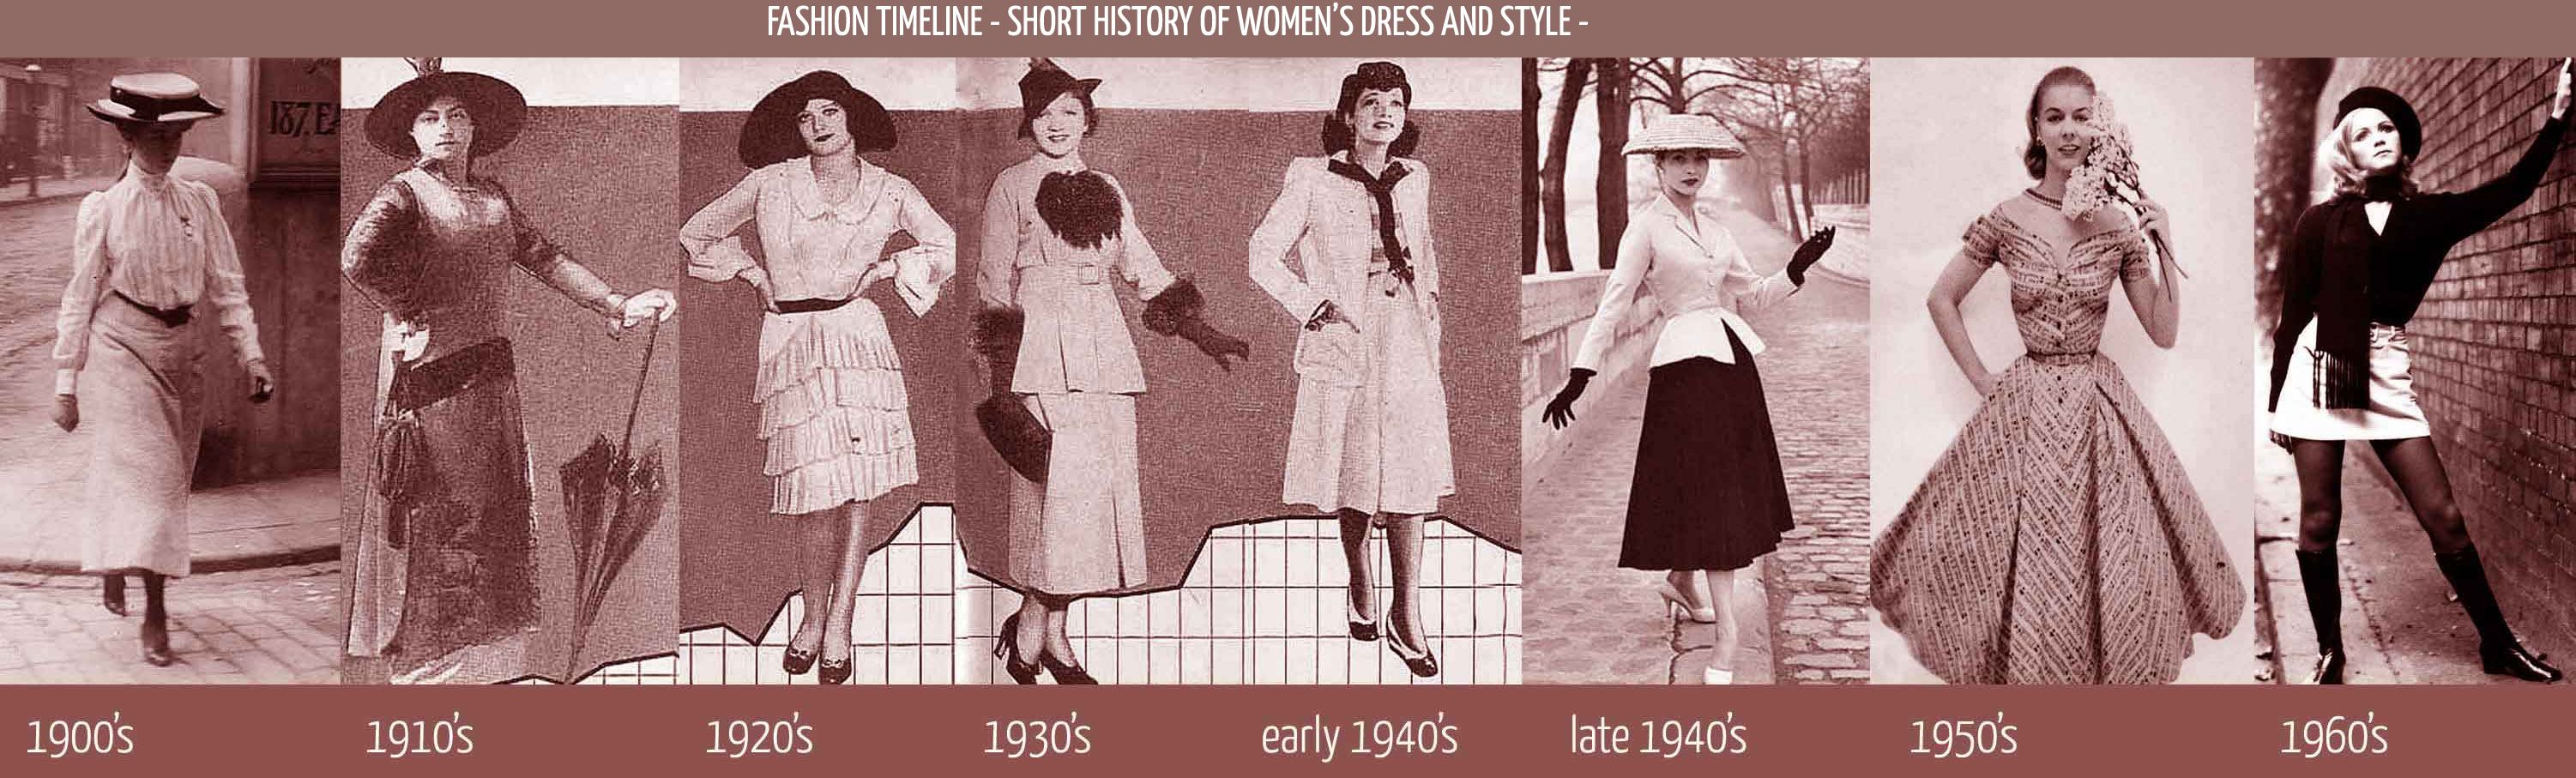 Fashion-Timeline-History-of-Womens-Dress-and-Styles-1900-to-1969.jpg (JPEG Imagen, 3003 × 907 píxeles) - Escalado (47%)